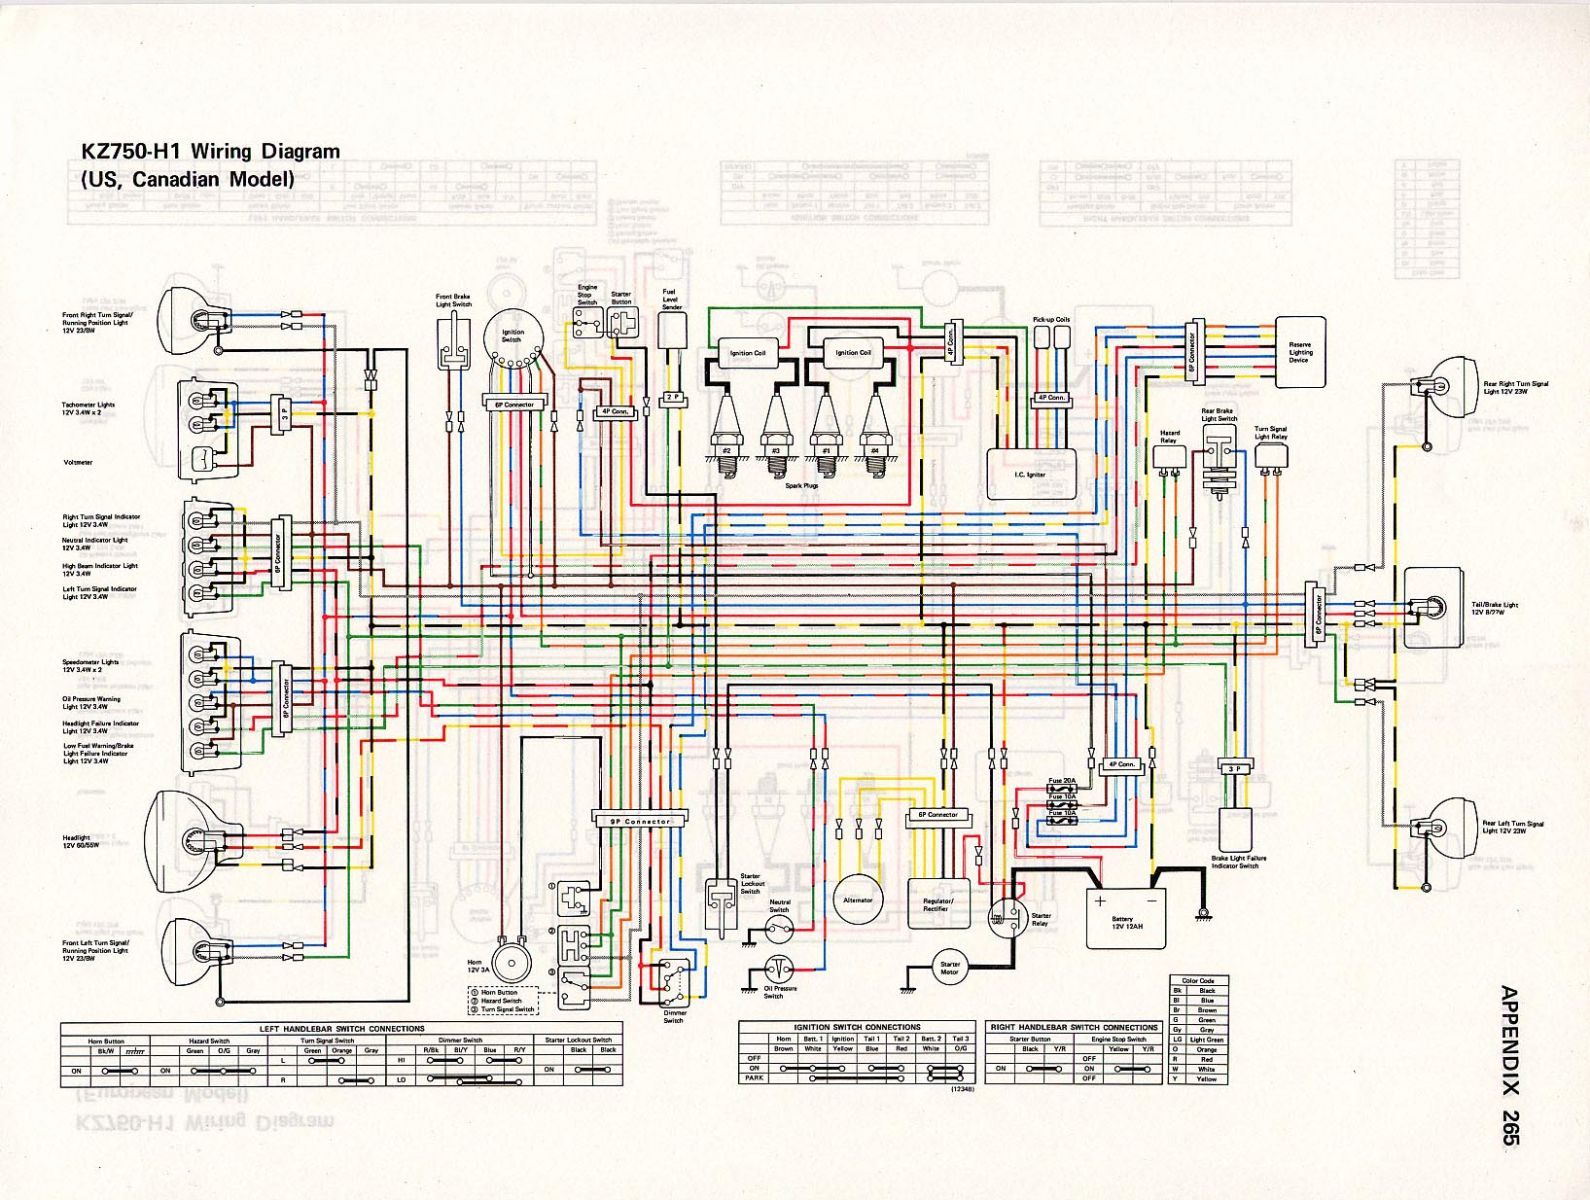 1983 Kawasaki Wiring Diagrams Best Secret Diagram Klt 200 750 Spectre Schematics Wire Color Schematic Rh 30 Koch Foerderbandtrommeln De 250